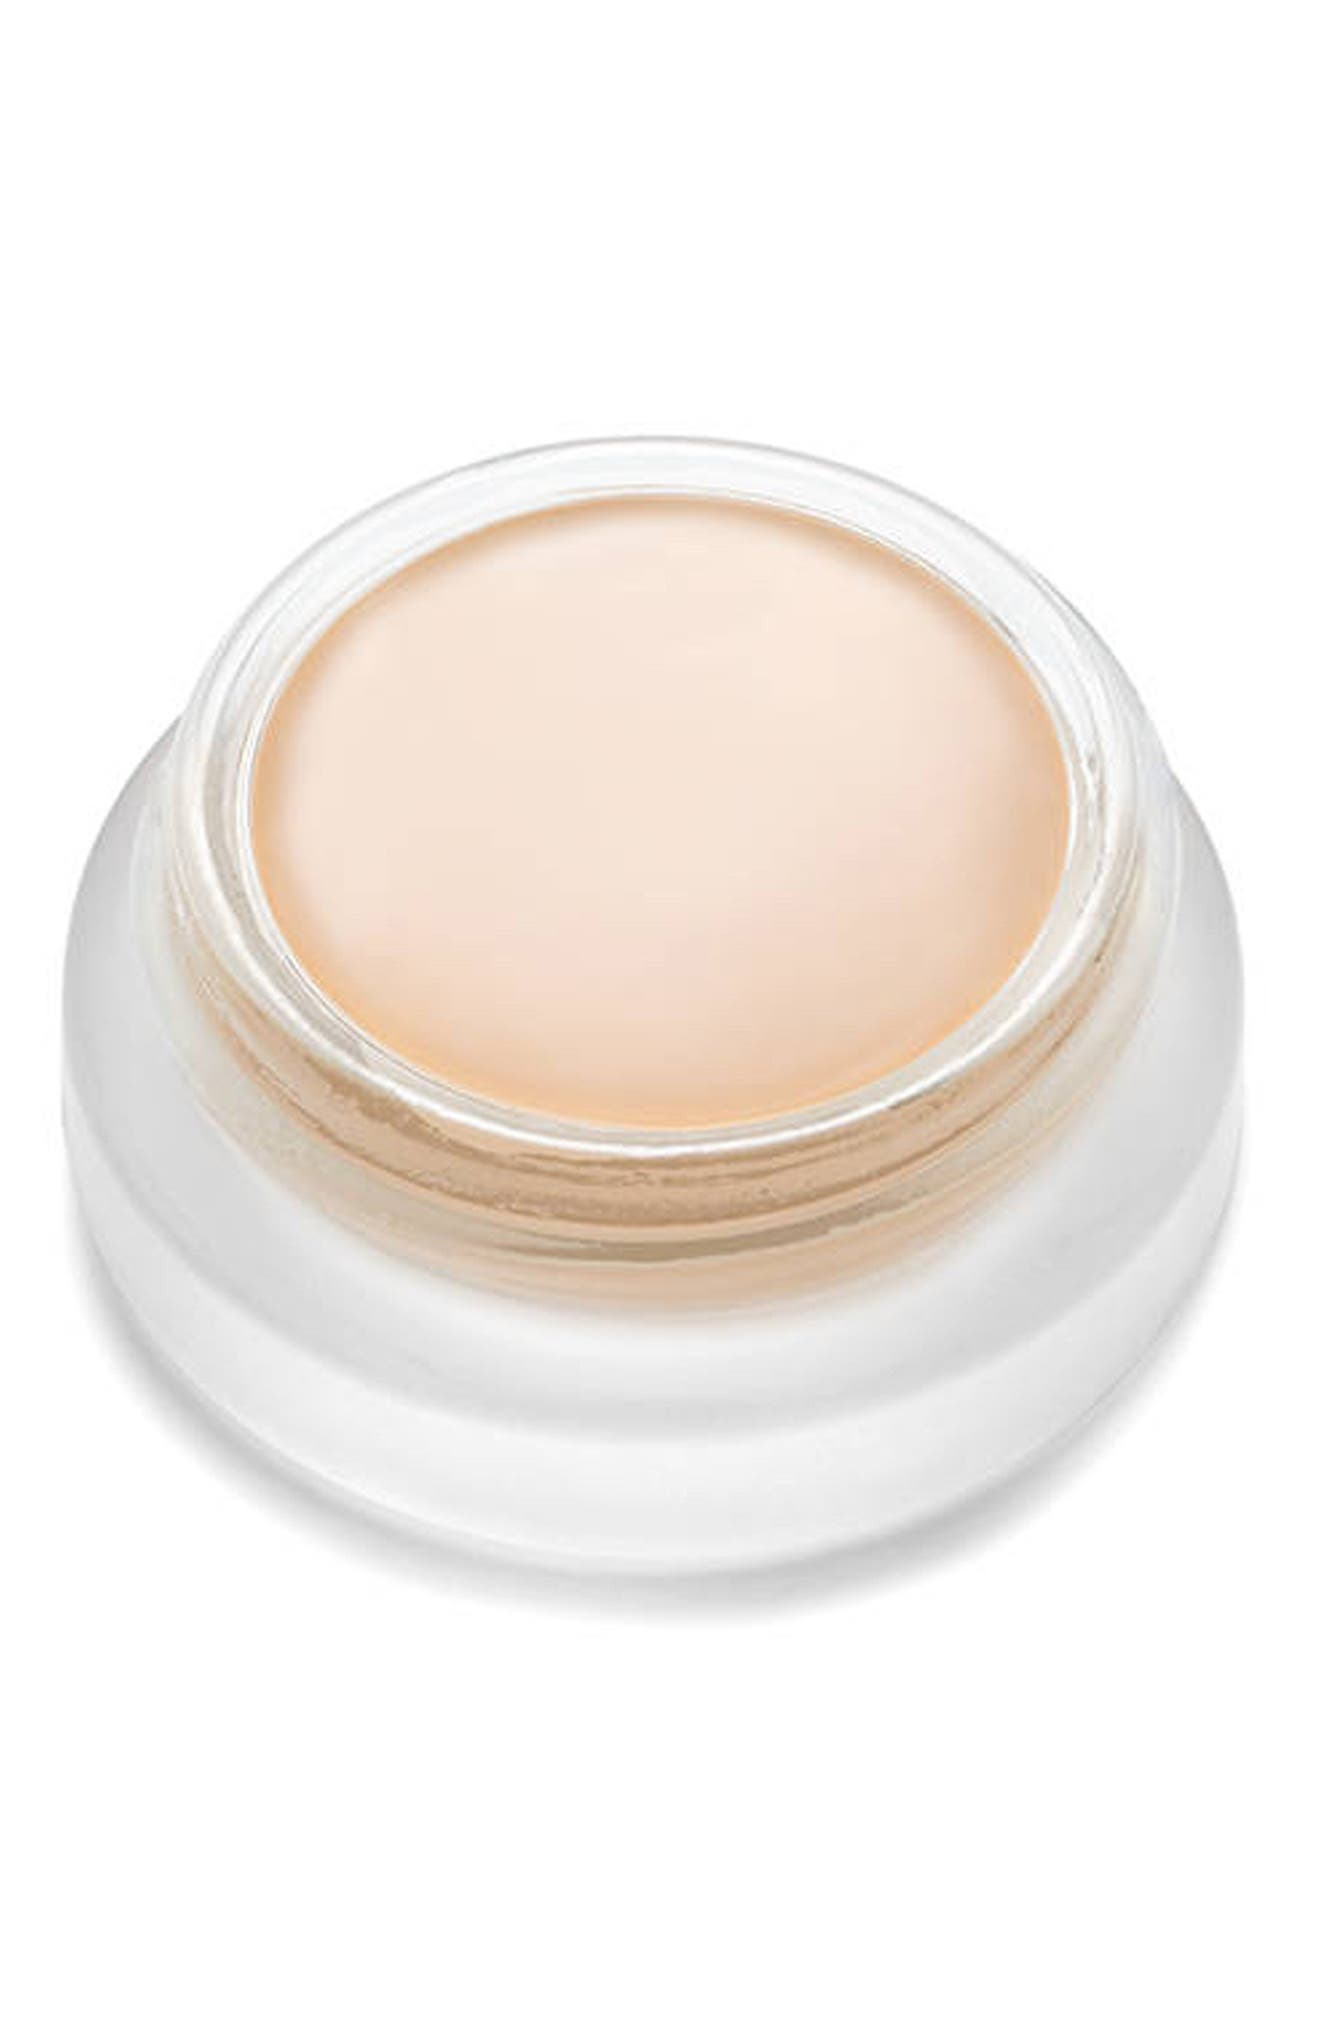 Main Image - RMS Beauty Un Cover-Up